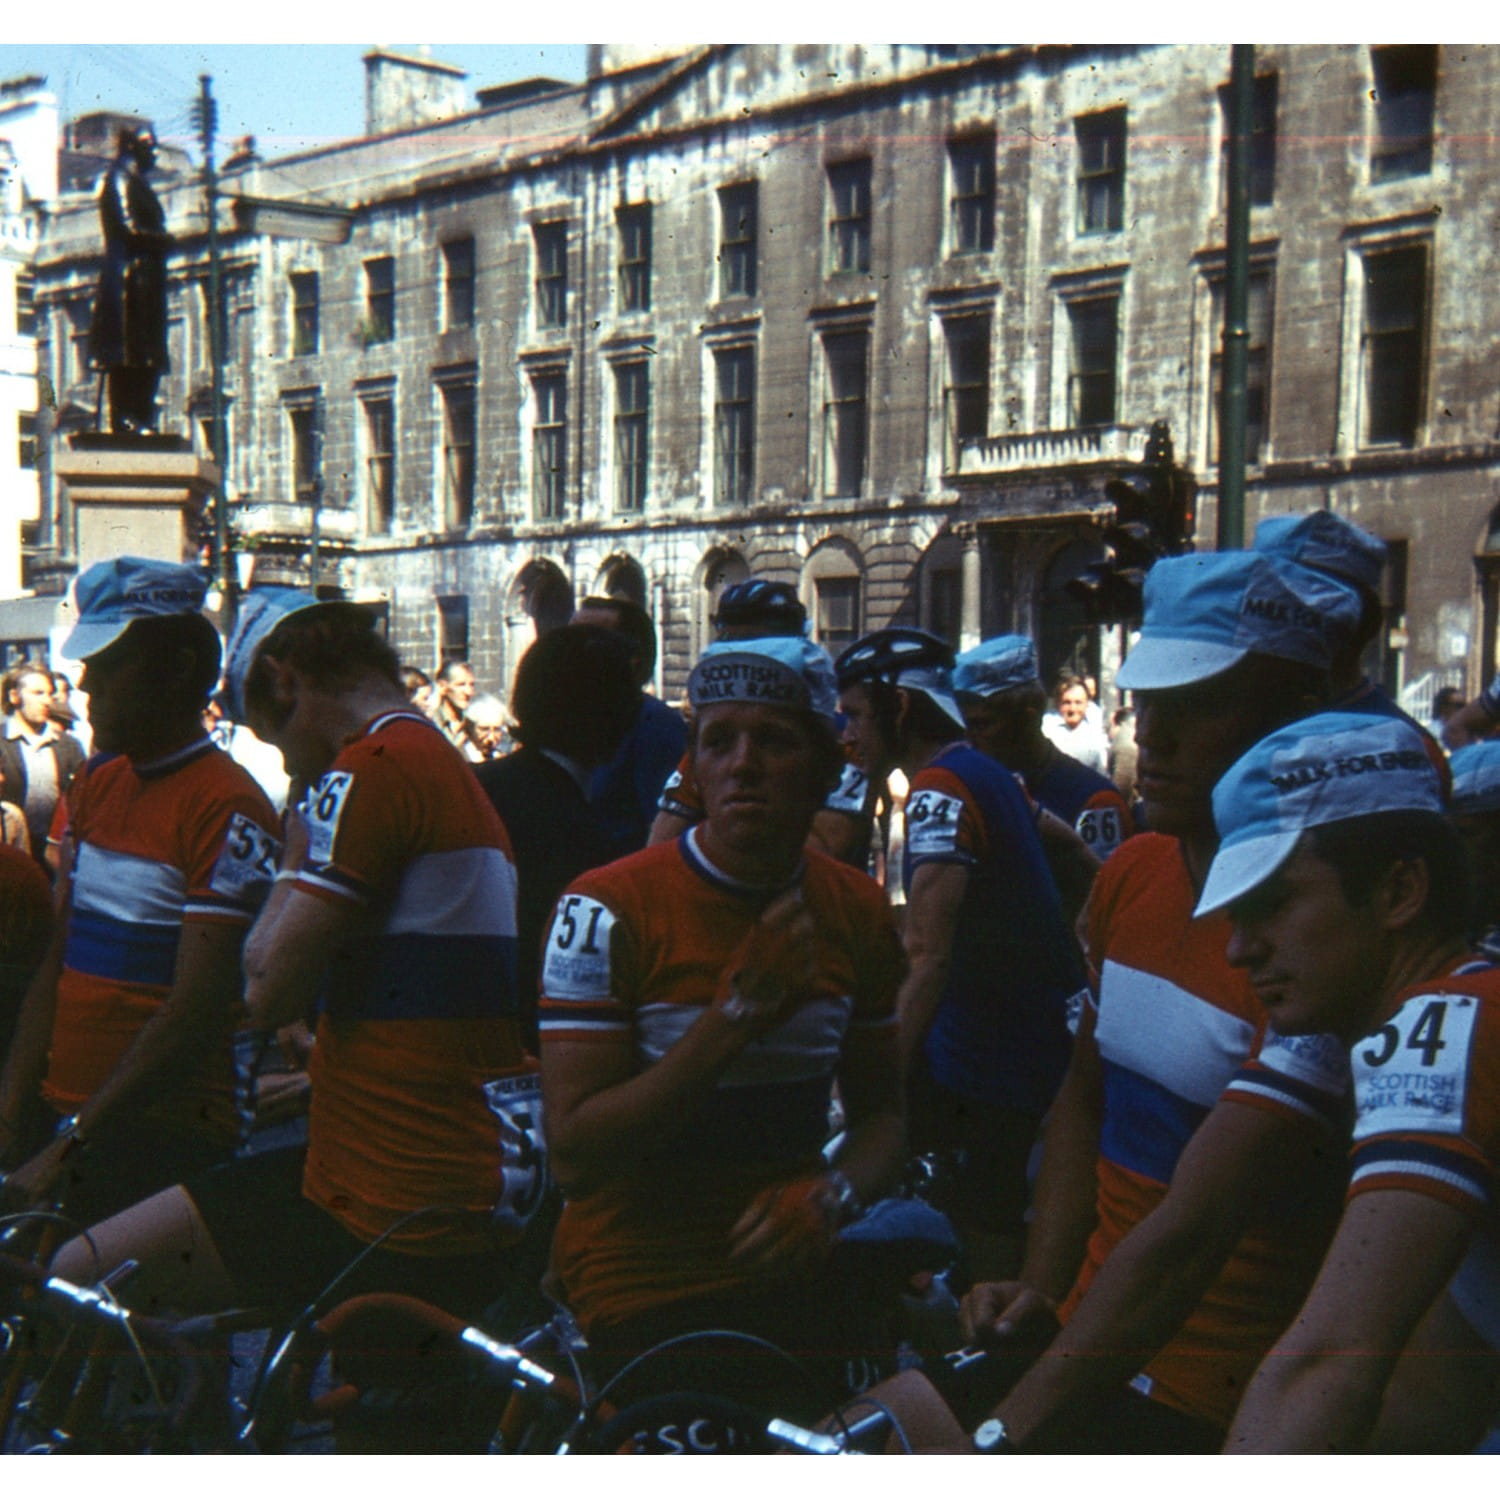 The riders assemble outside the City Chambers